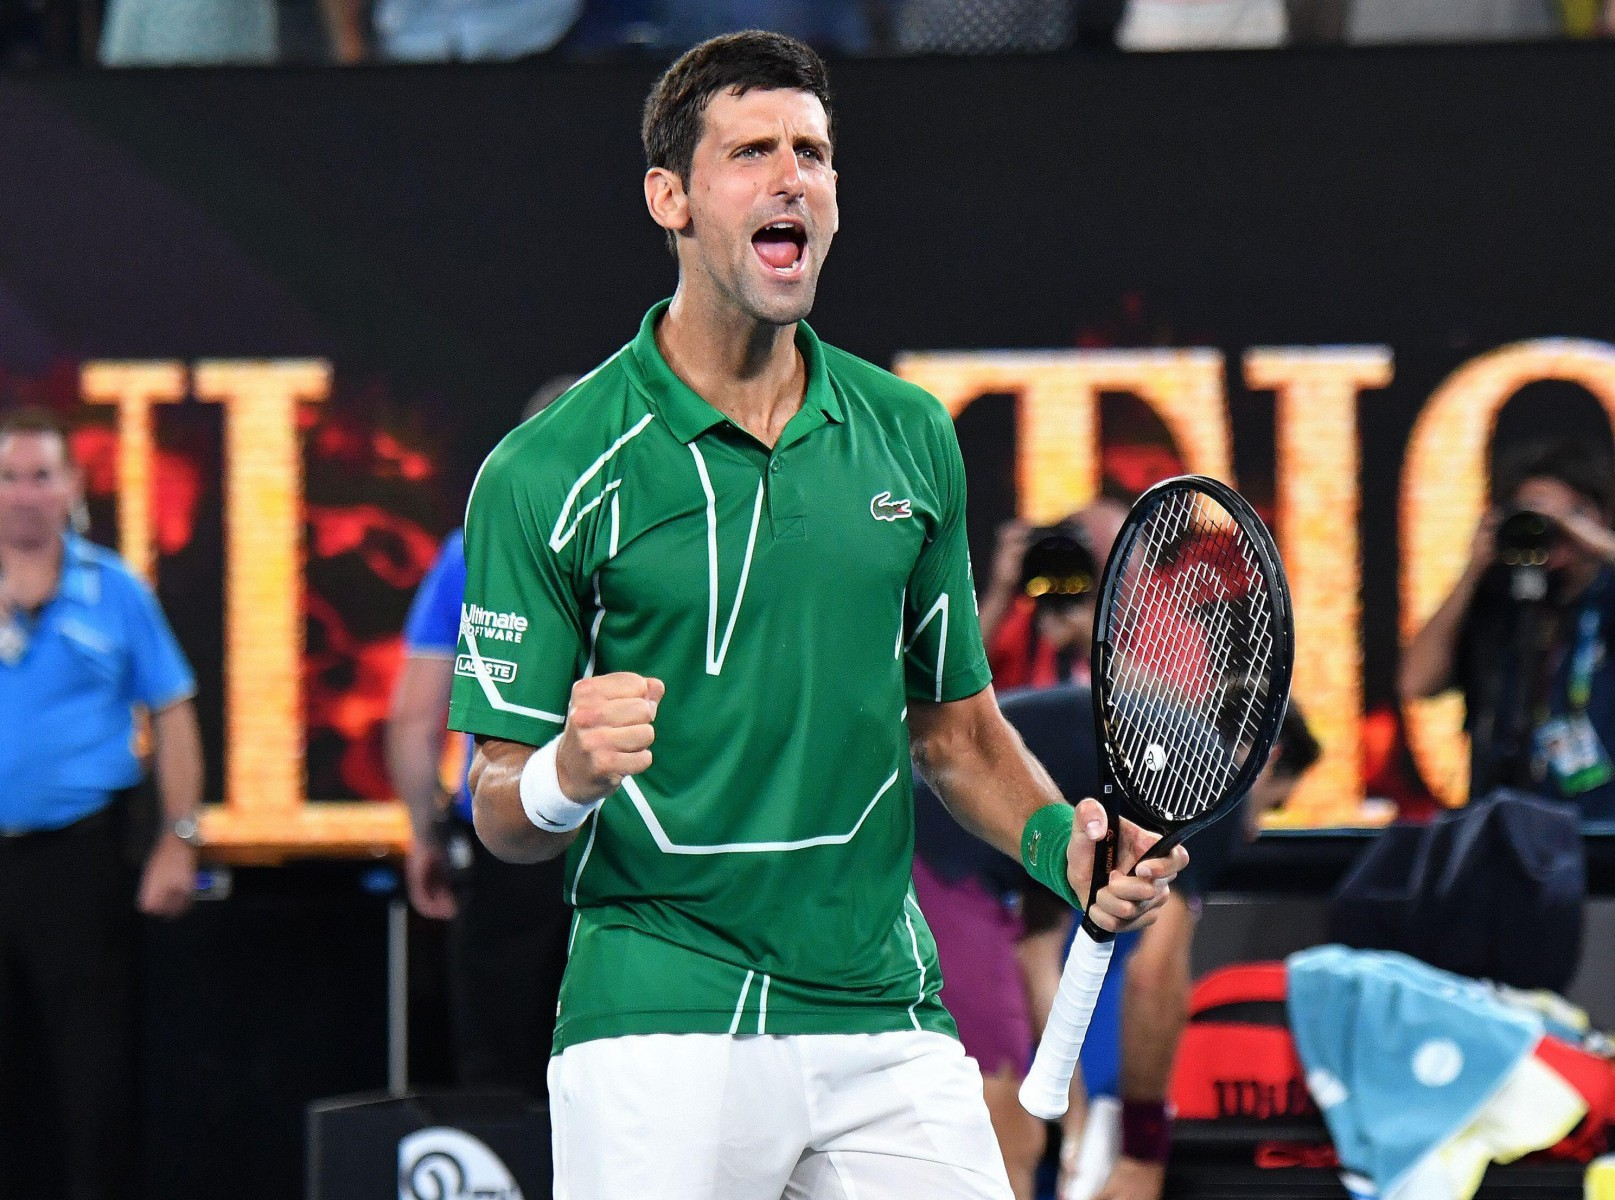 Novak Djokovic roared his way into the final but expressed his admiration for Roger Federer never giving up